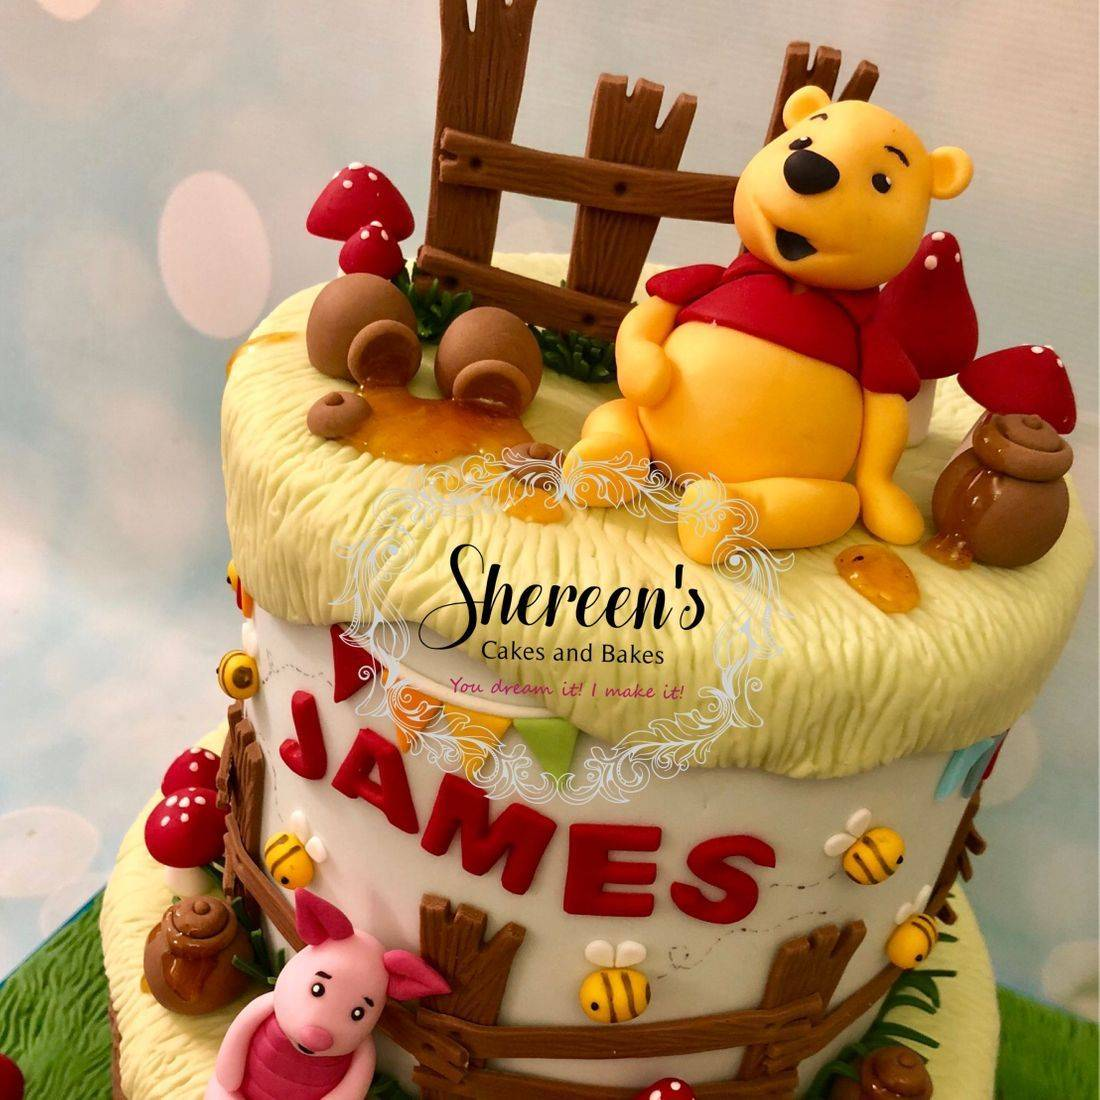 Pooh Bear Friends Tigger Piglet Eeyore Toadstools Honey Pot Bees Bunting Cake Celebration Birthday